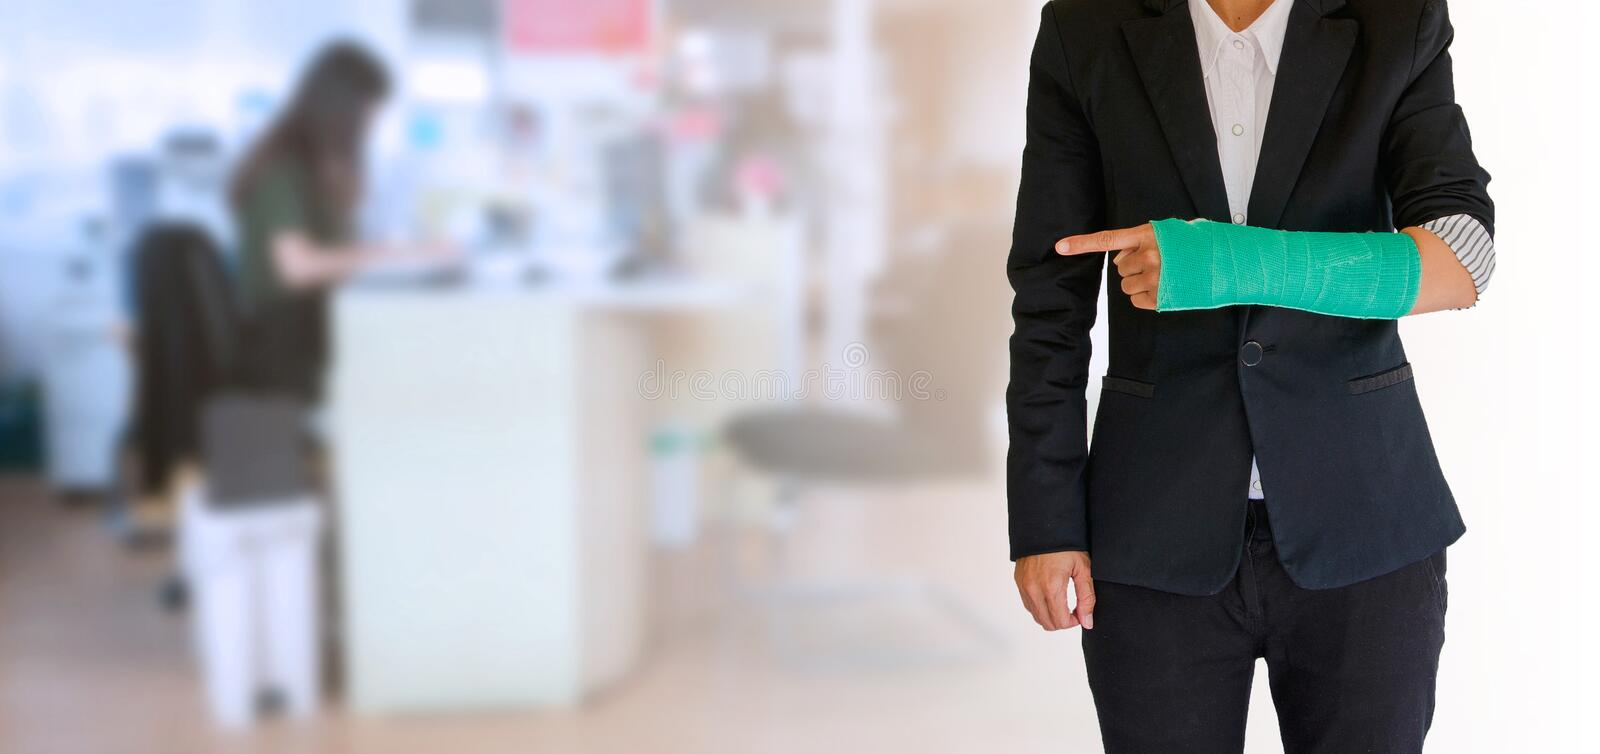 Worker woman accident on arm with green arm cast on blurred business office working space background royalty free stock photography